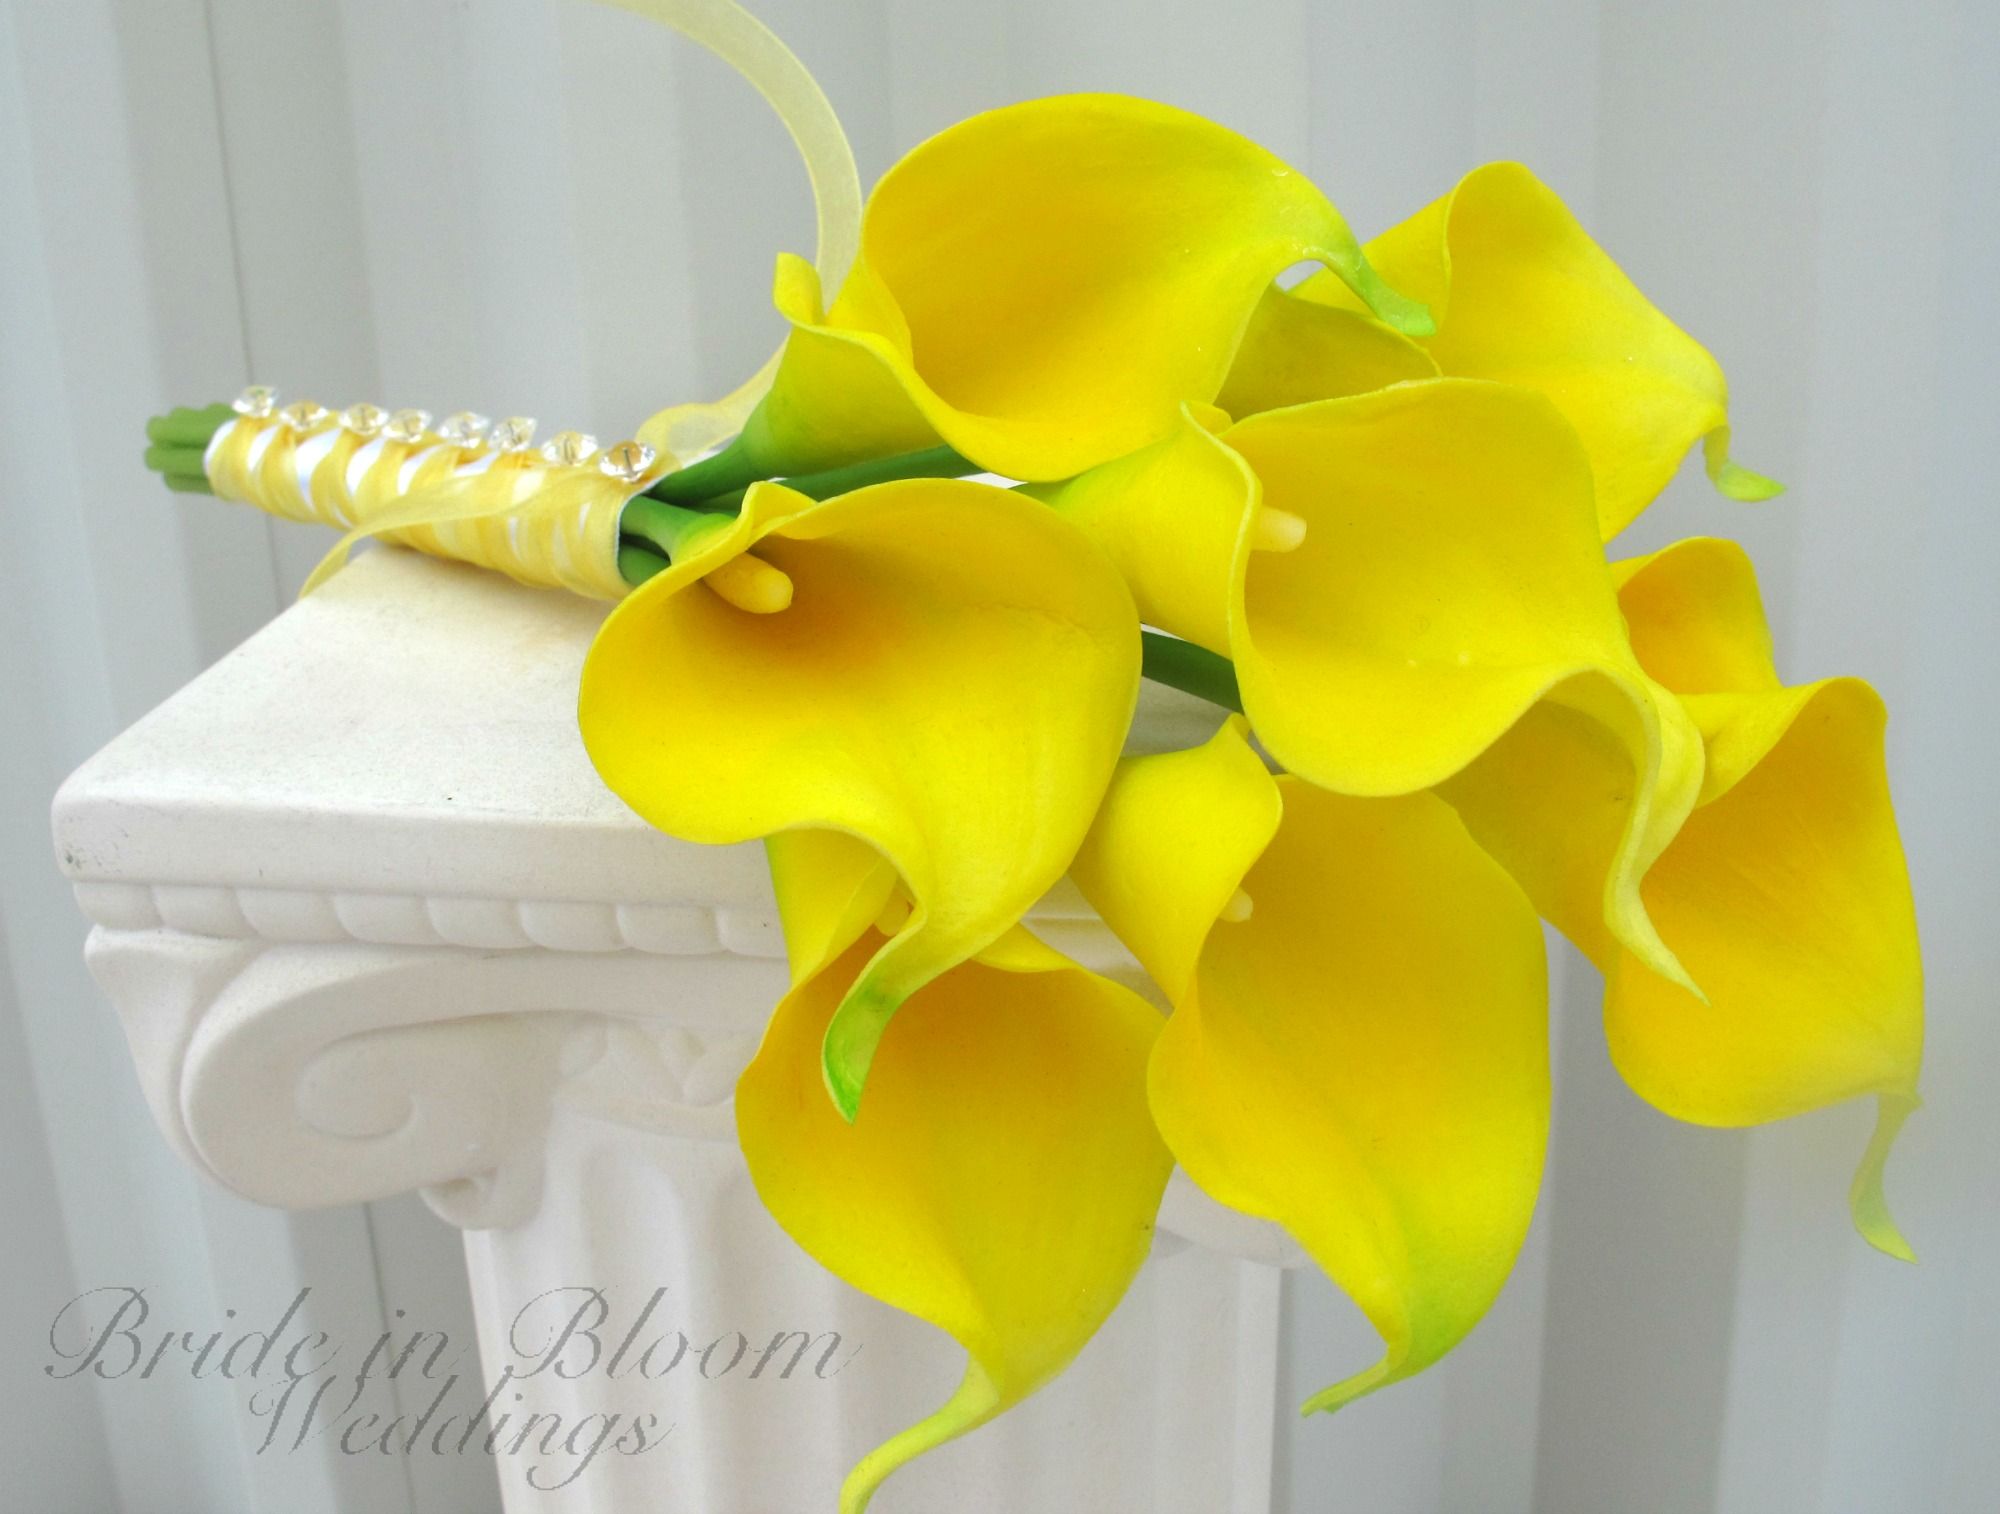 Yellow calla lily wedding bouquet bride in bloom dhlflorist Images